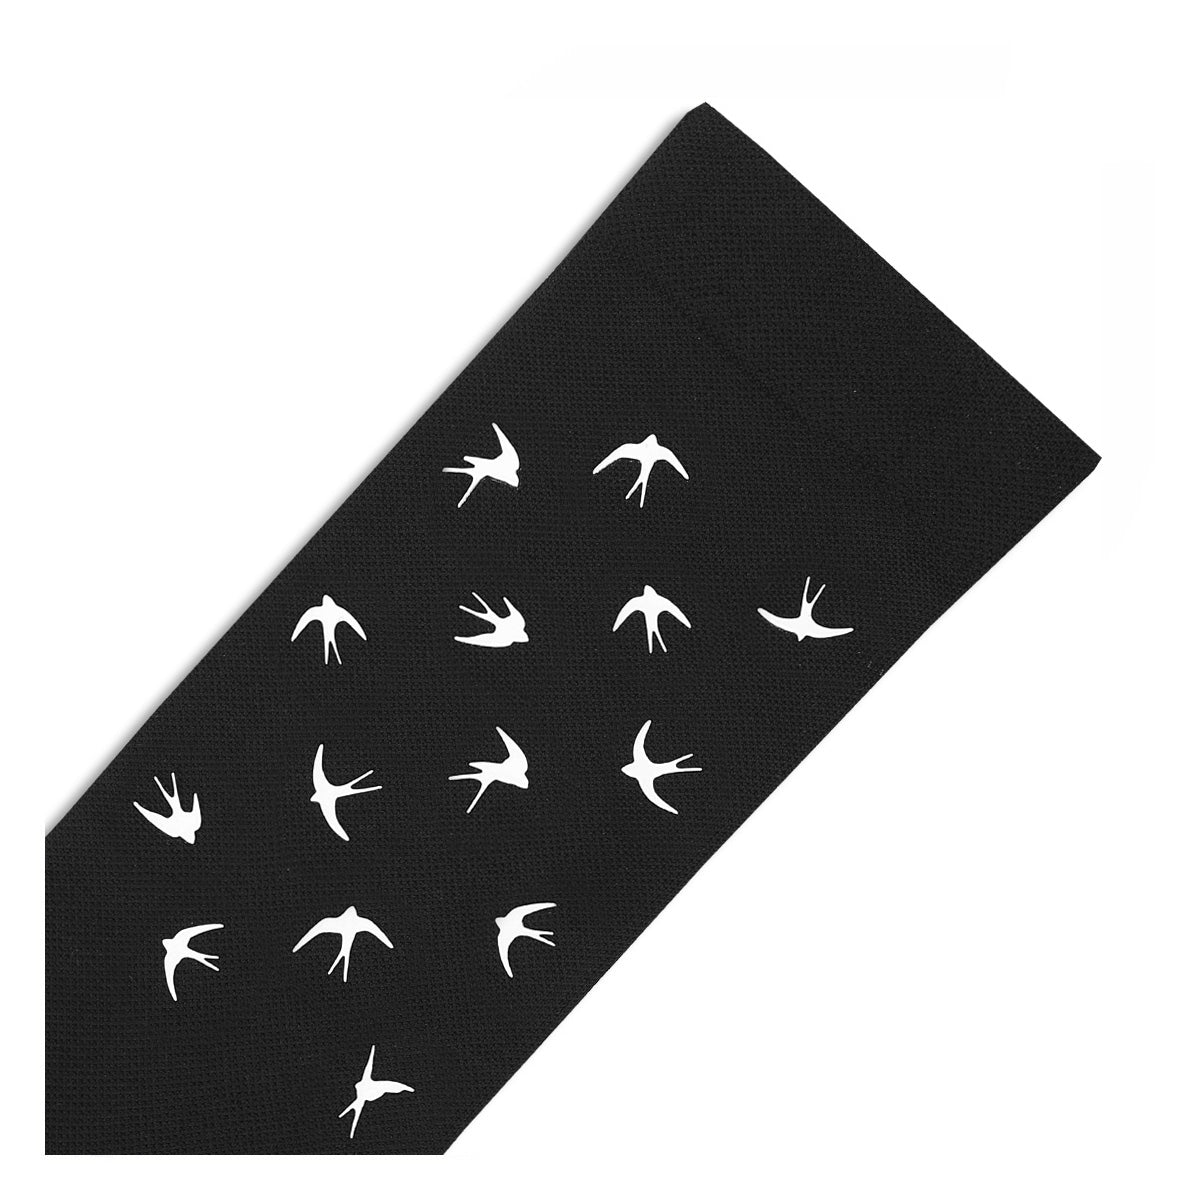 3D Swallows Socks